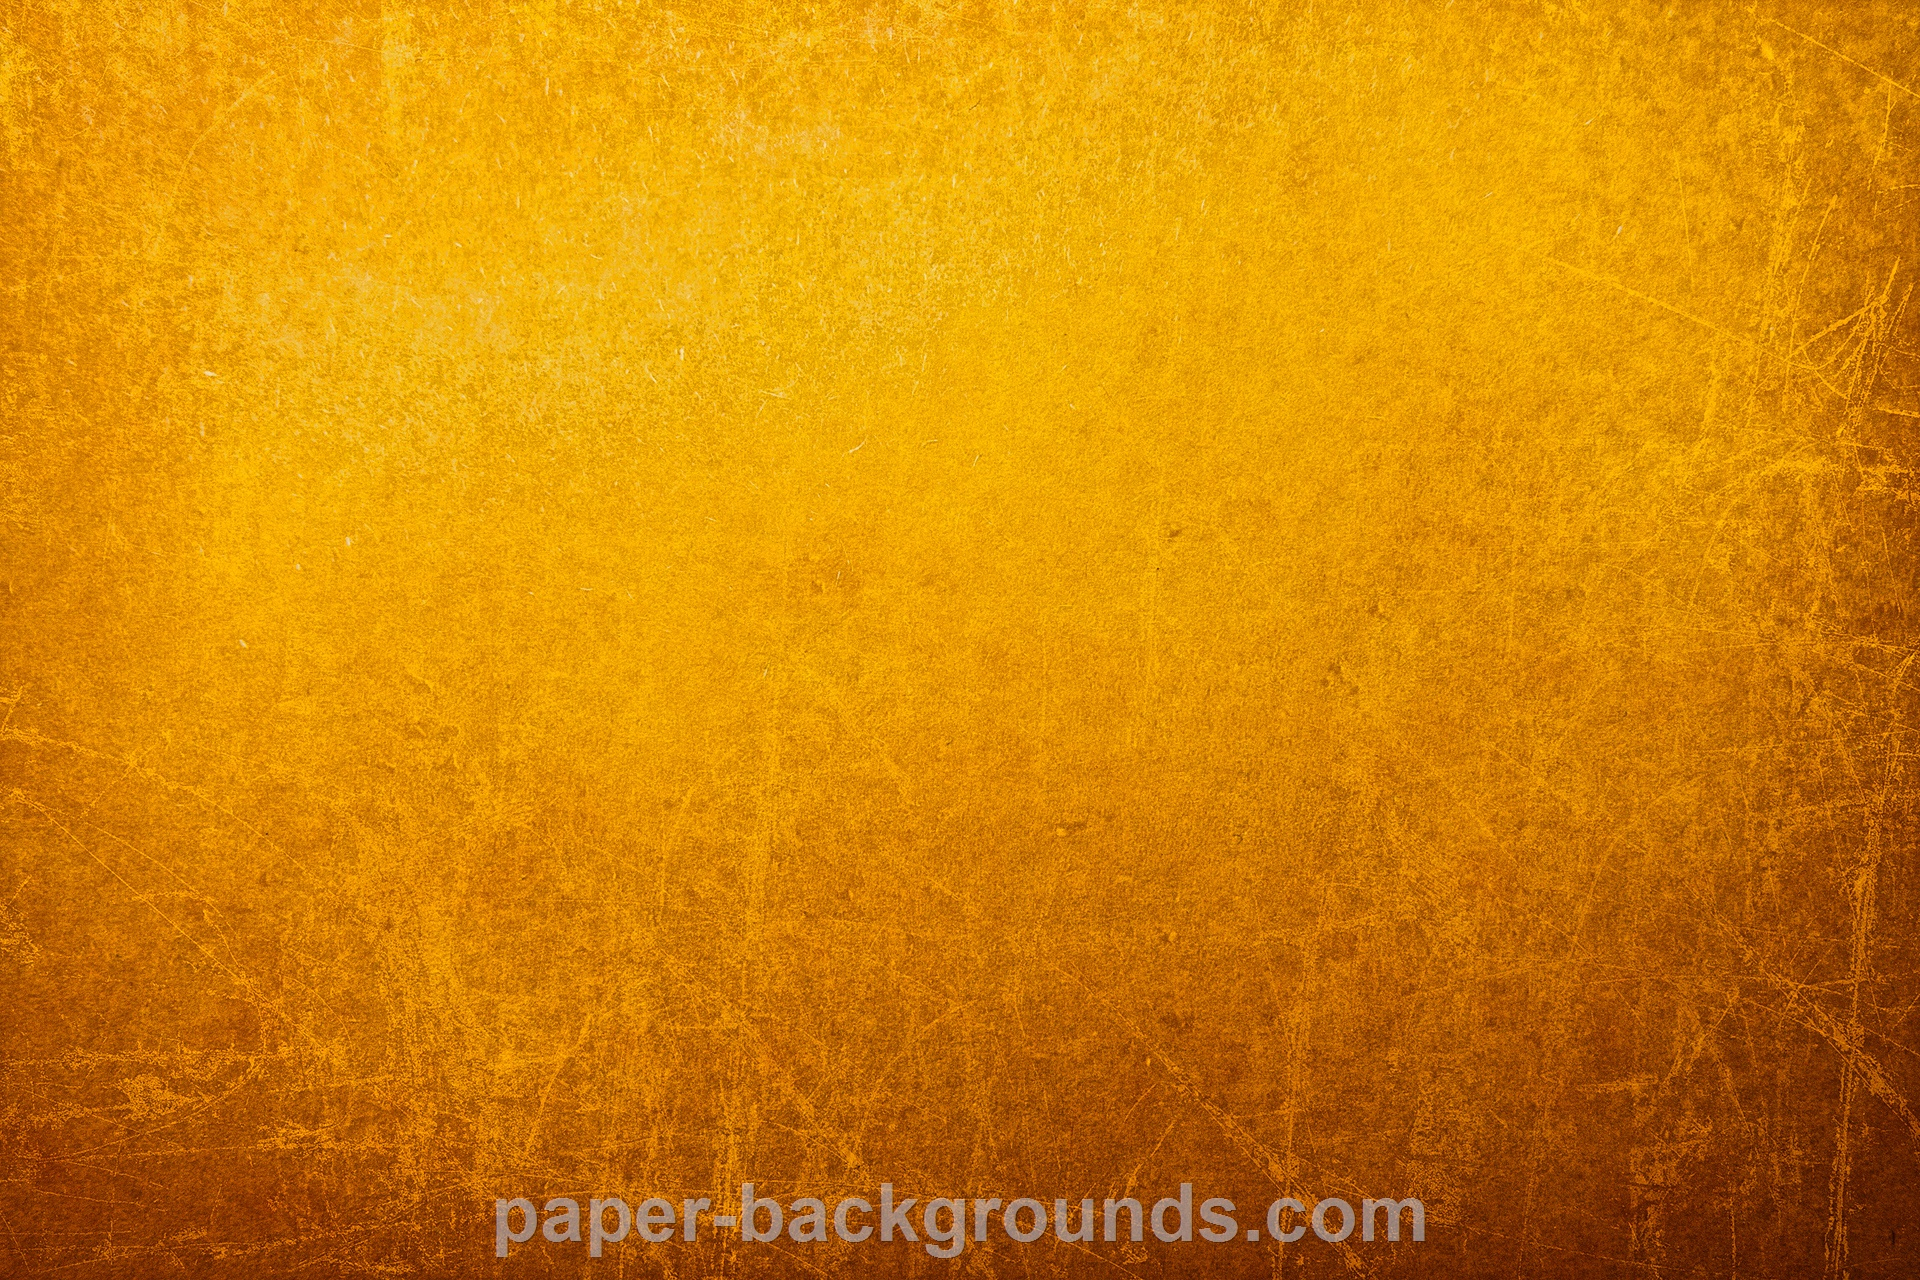 Orange Scratched Vintage Background Texture HD